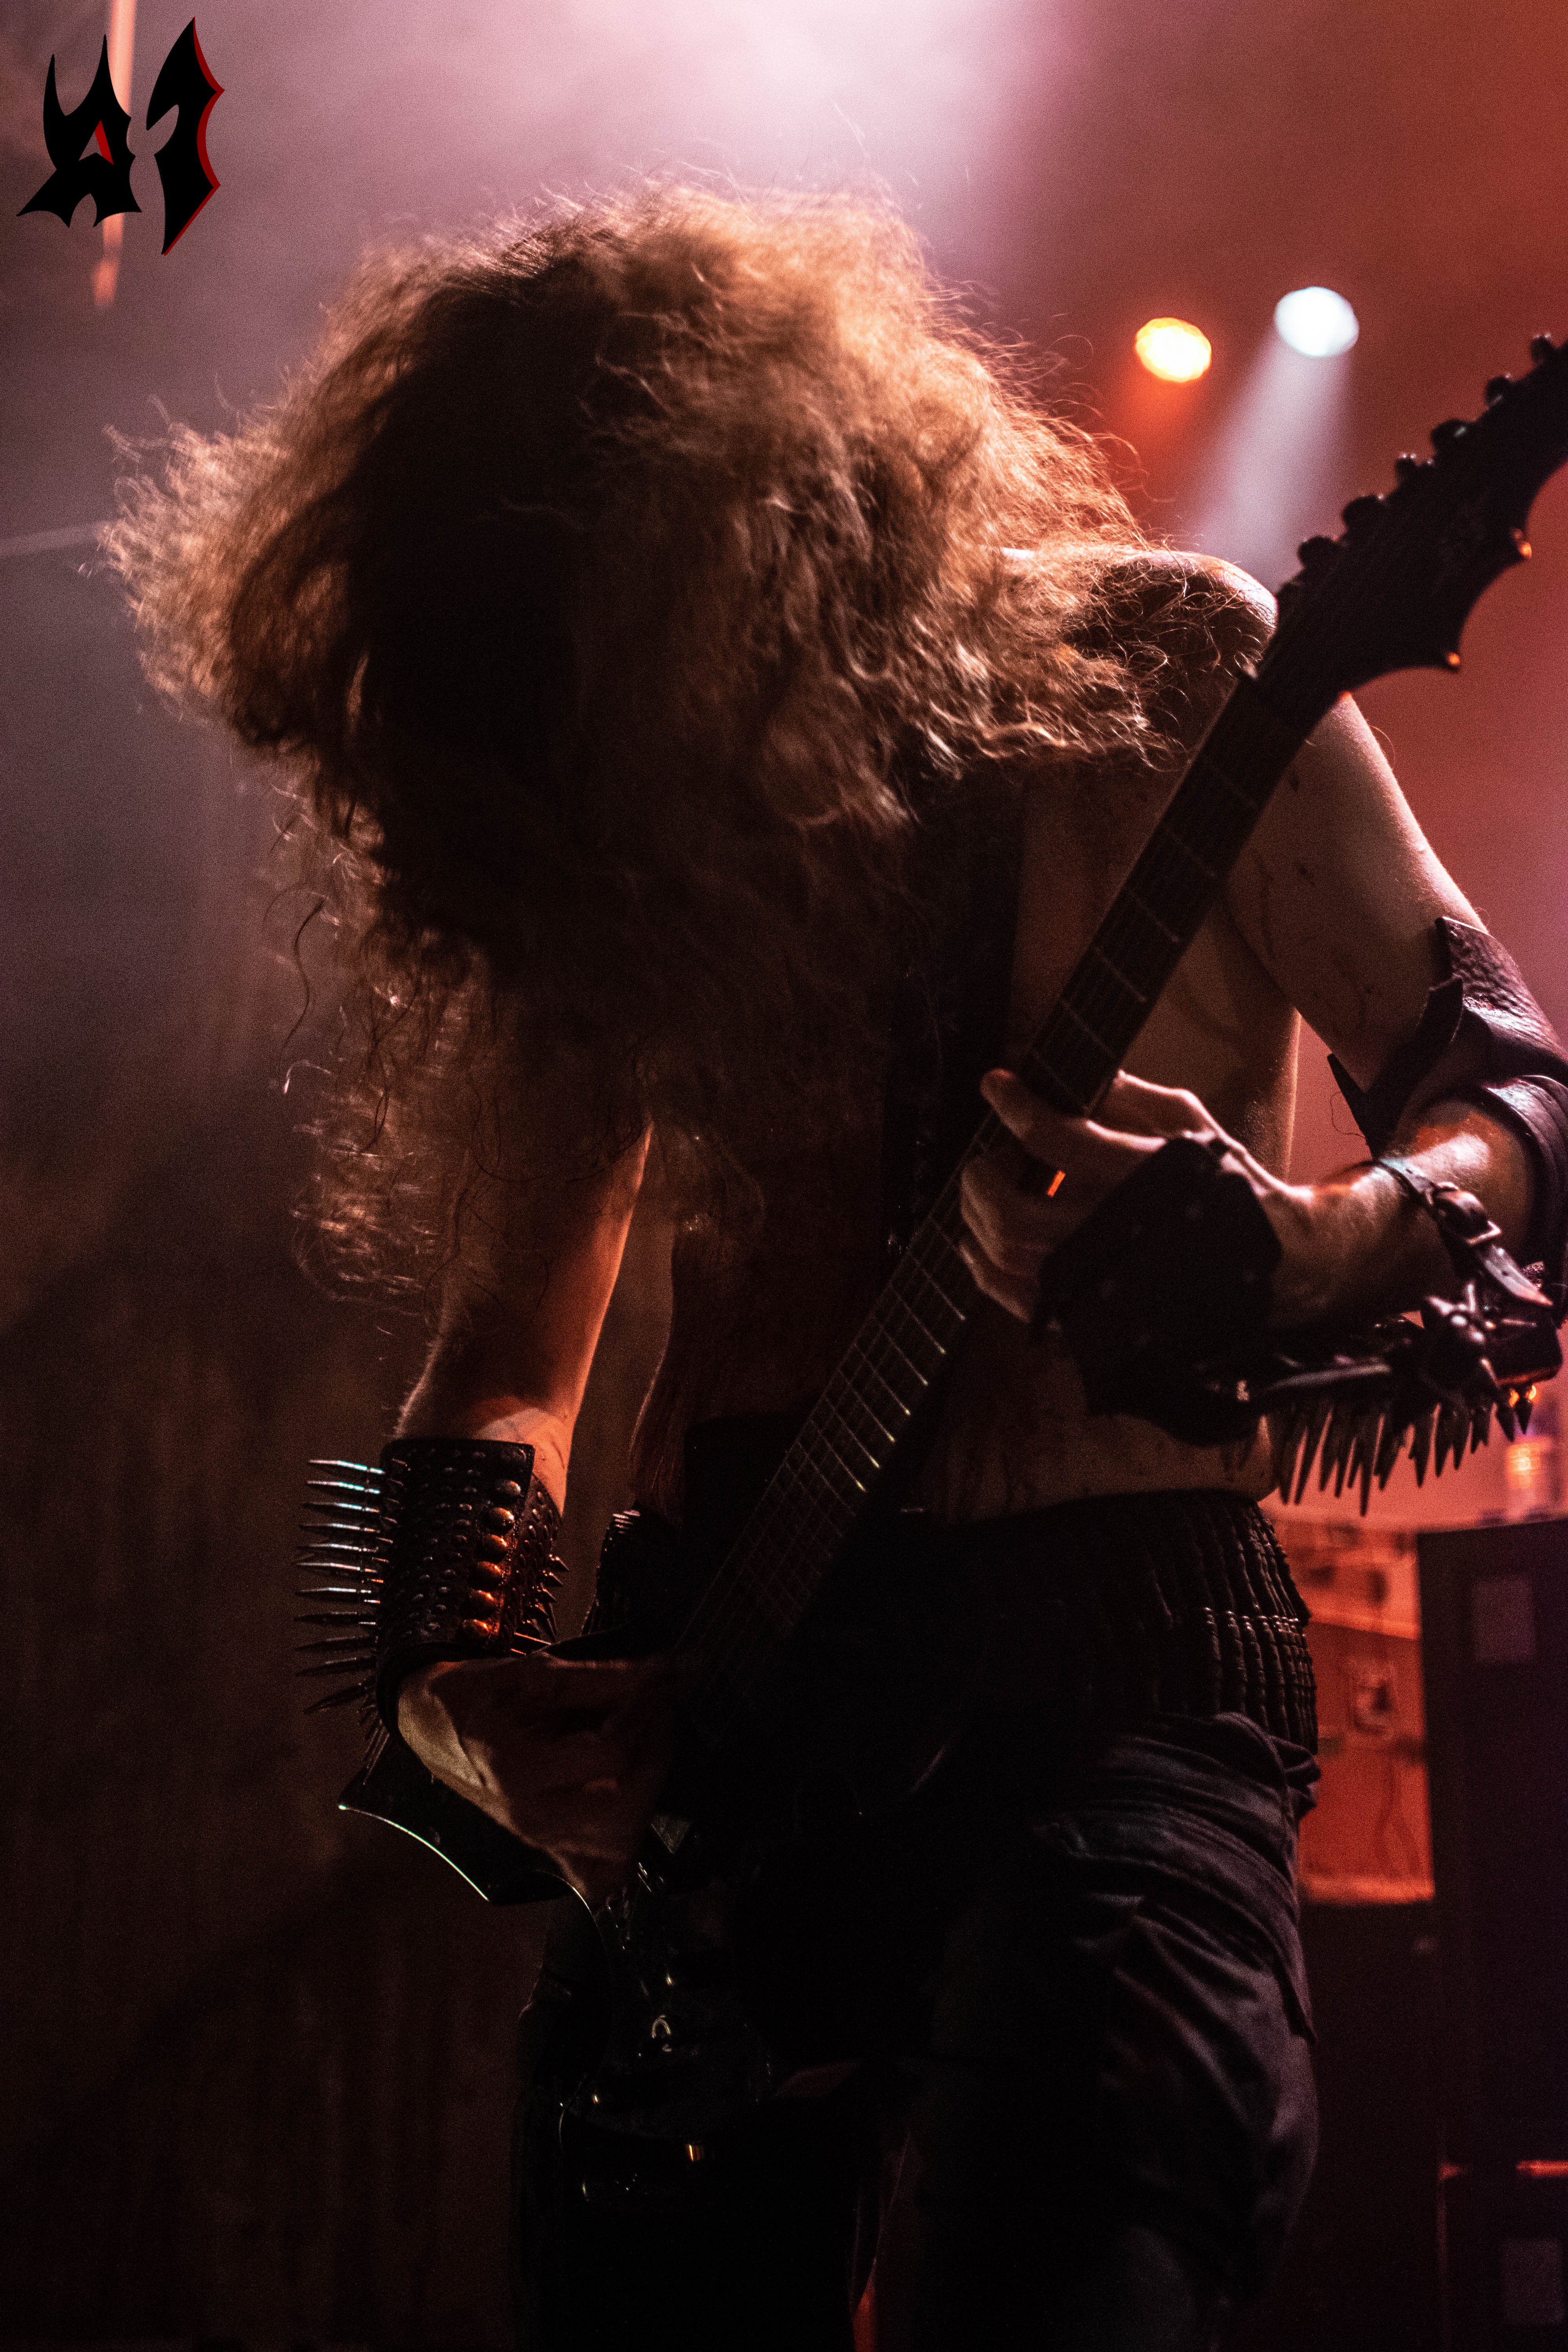 Darkened Nocturn Slaughtercult - 30